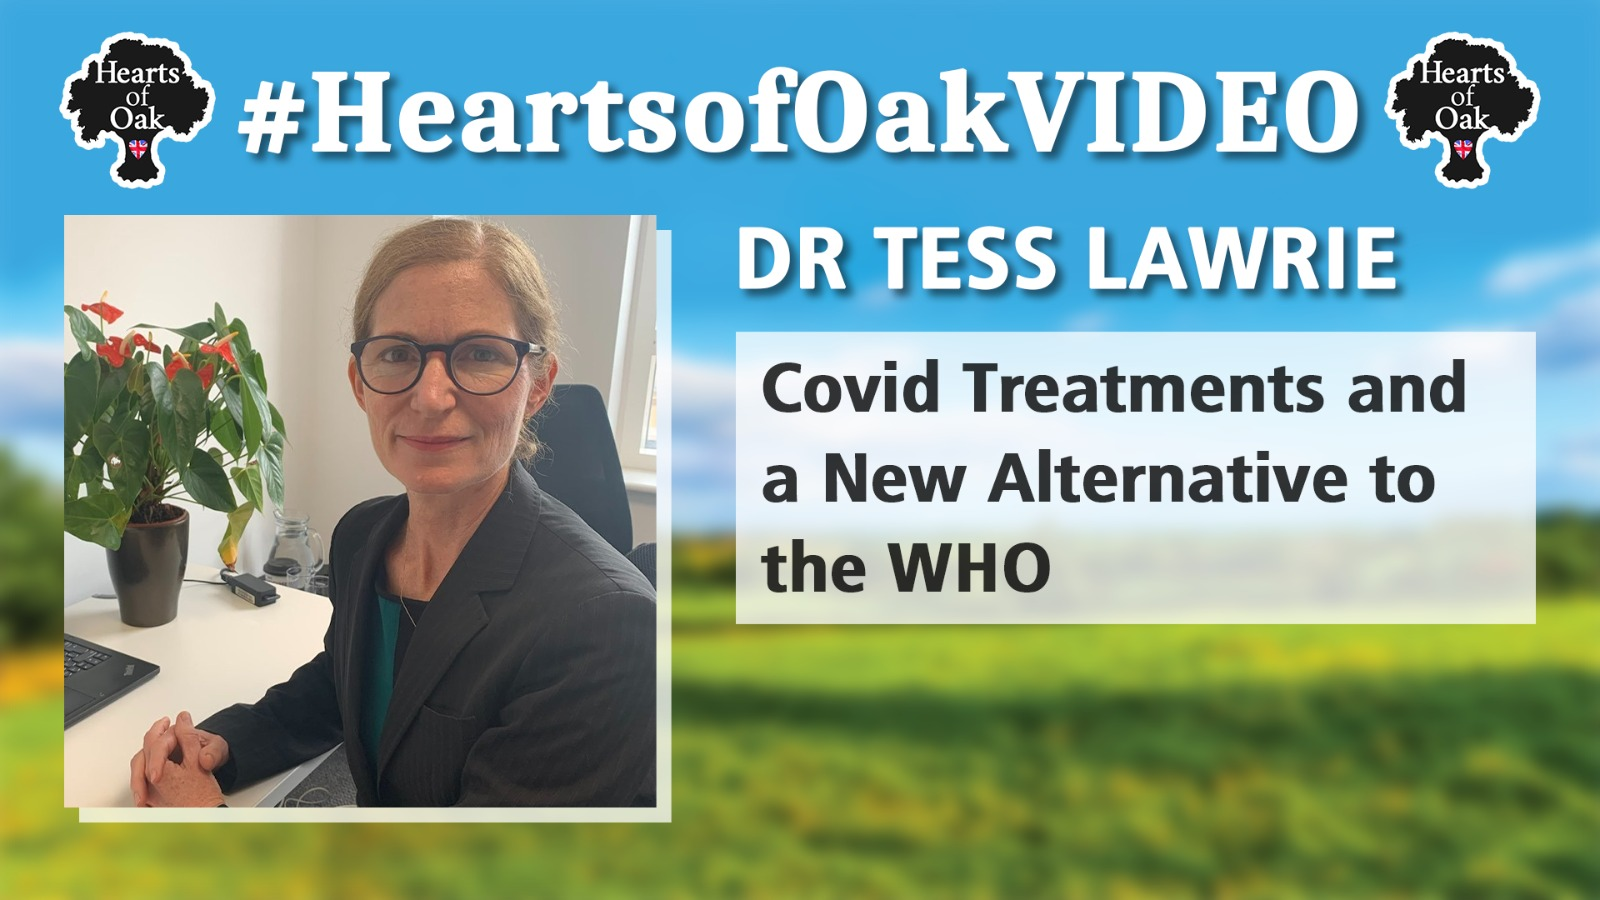 Dr Tess Lawrie: Covid Treatments and a New Alternative to the WHO